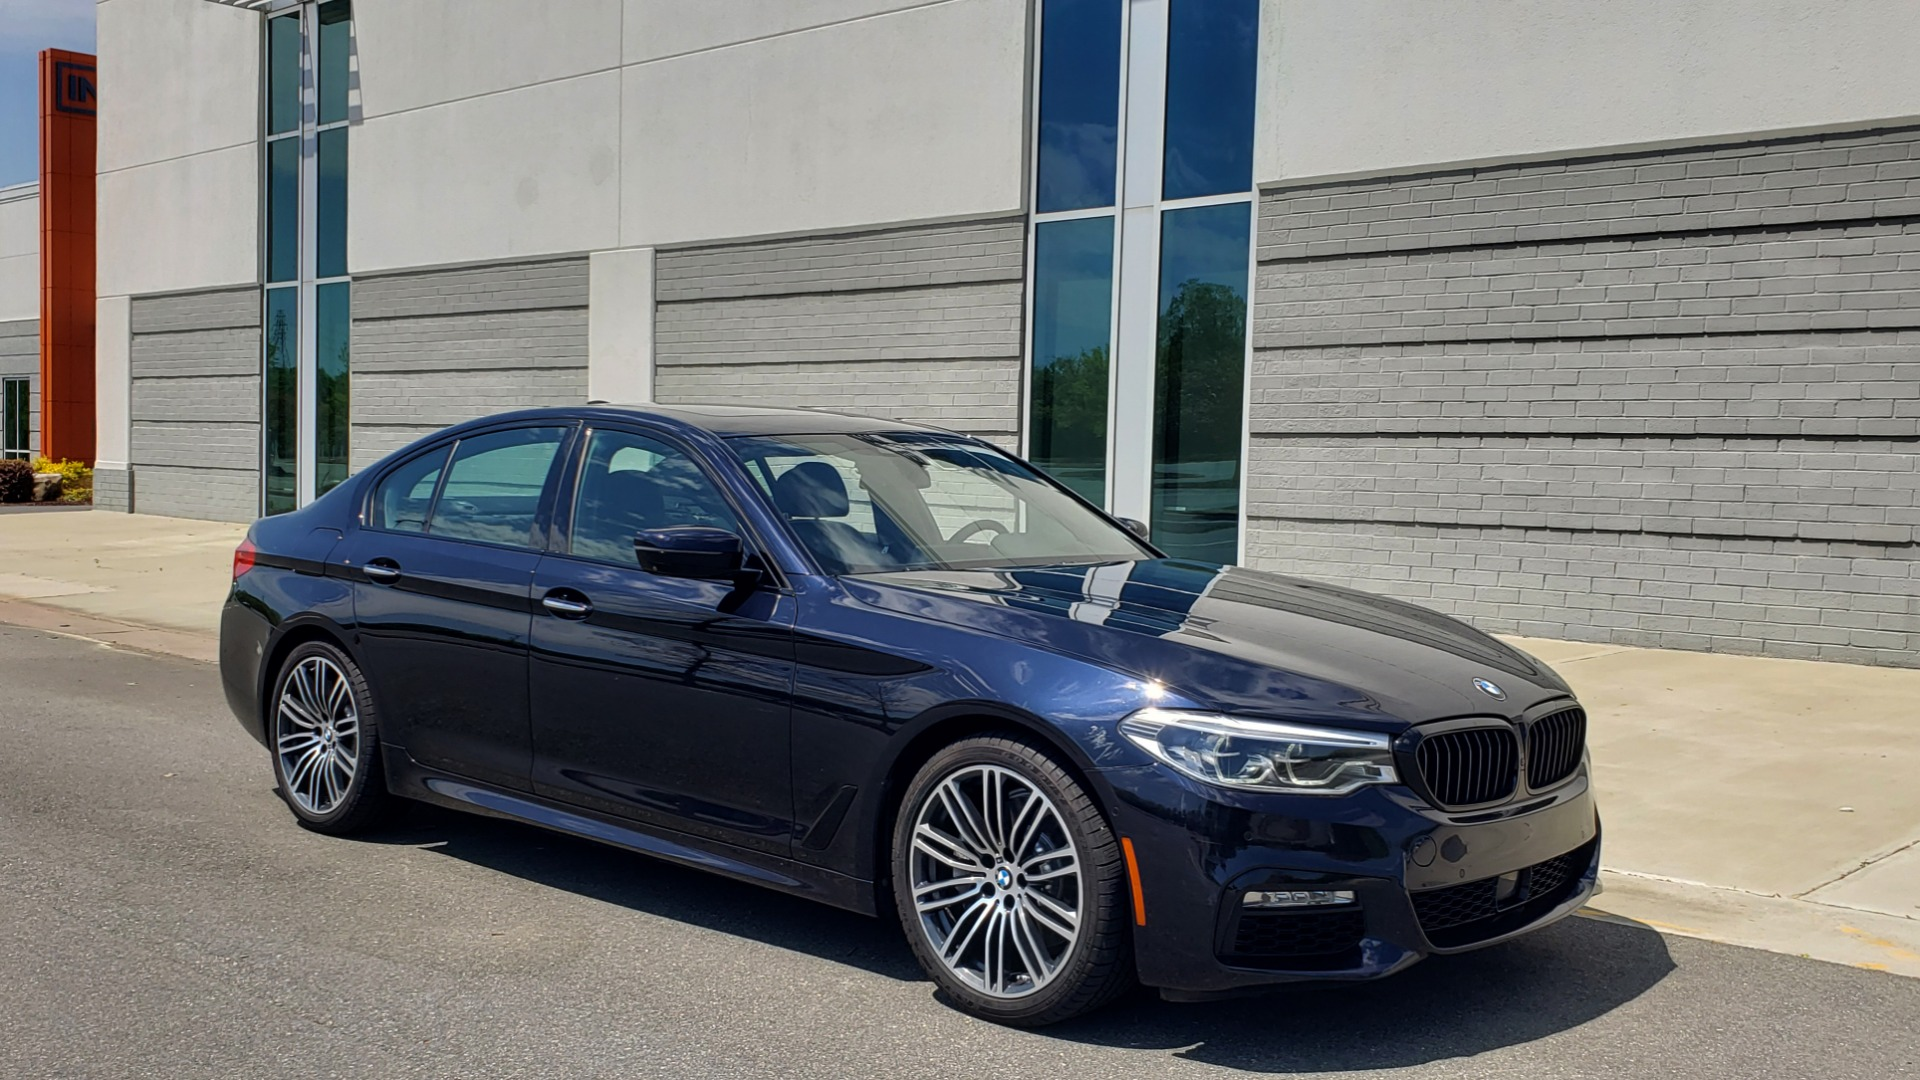 Used 2017 BMW 5 SERIES 540I XDRIVE M-SPORT / PREMIUM / DRVR ASST PLUS / CLD WTHR / LUXURY for sale Sold at Formula Imports in Charlotte NC 28227 3